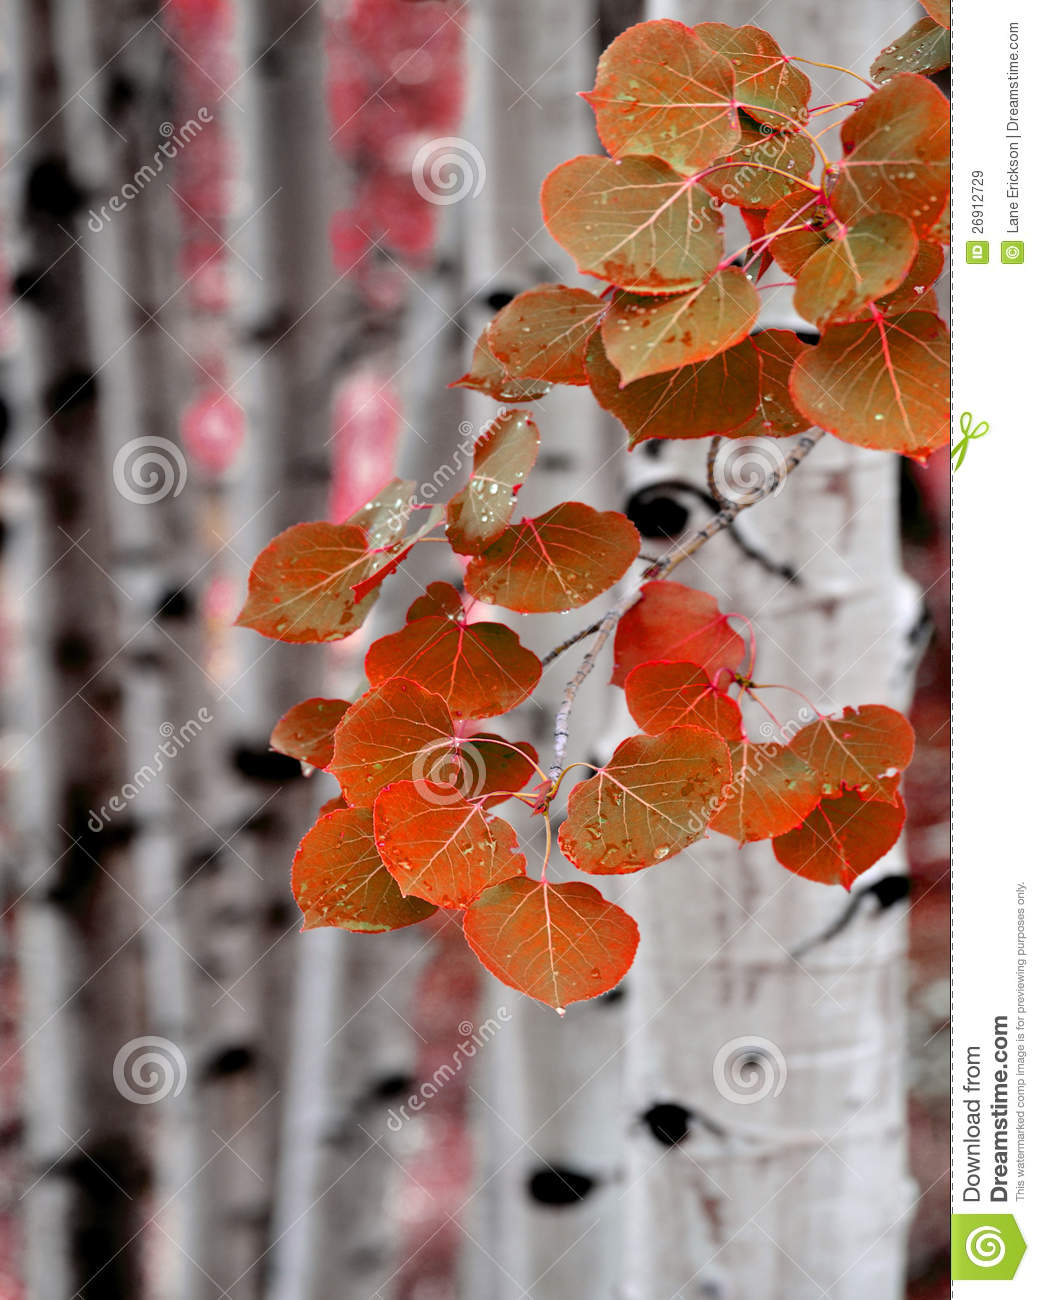 Aspen Birch Trees In Fall Royalty Free Stock Images - Image: 26912729